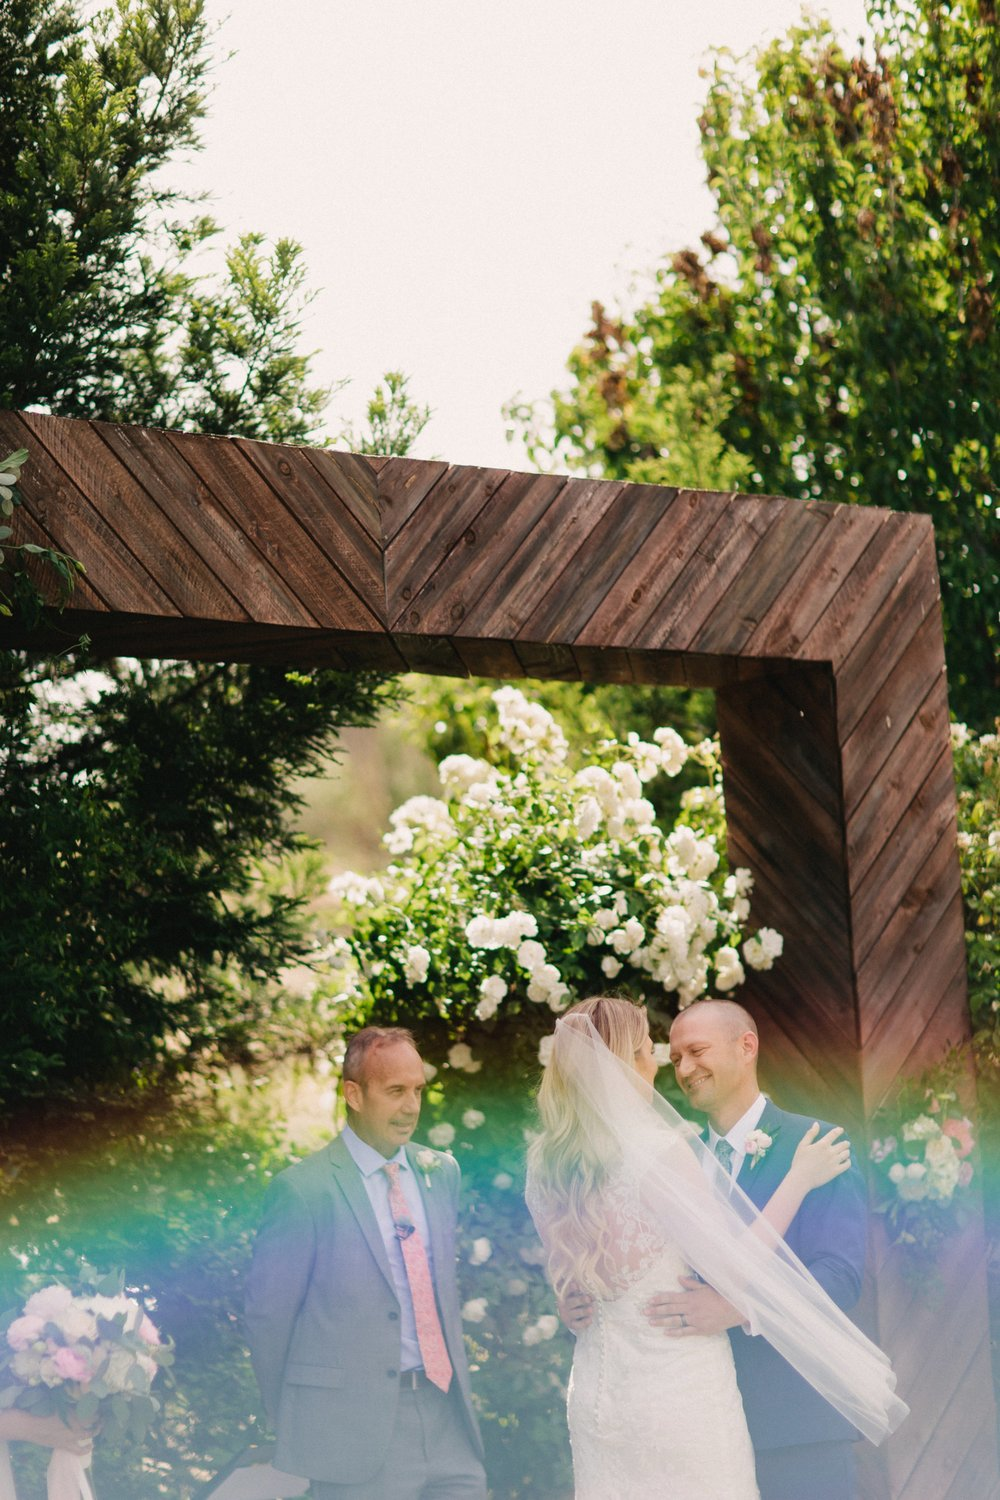 CaliforniaWedding|LindenCloverPhotography_0057.jpg